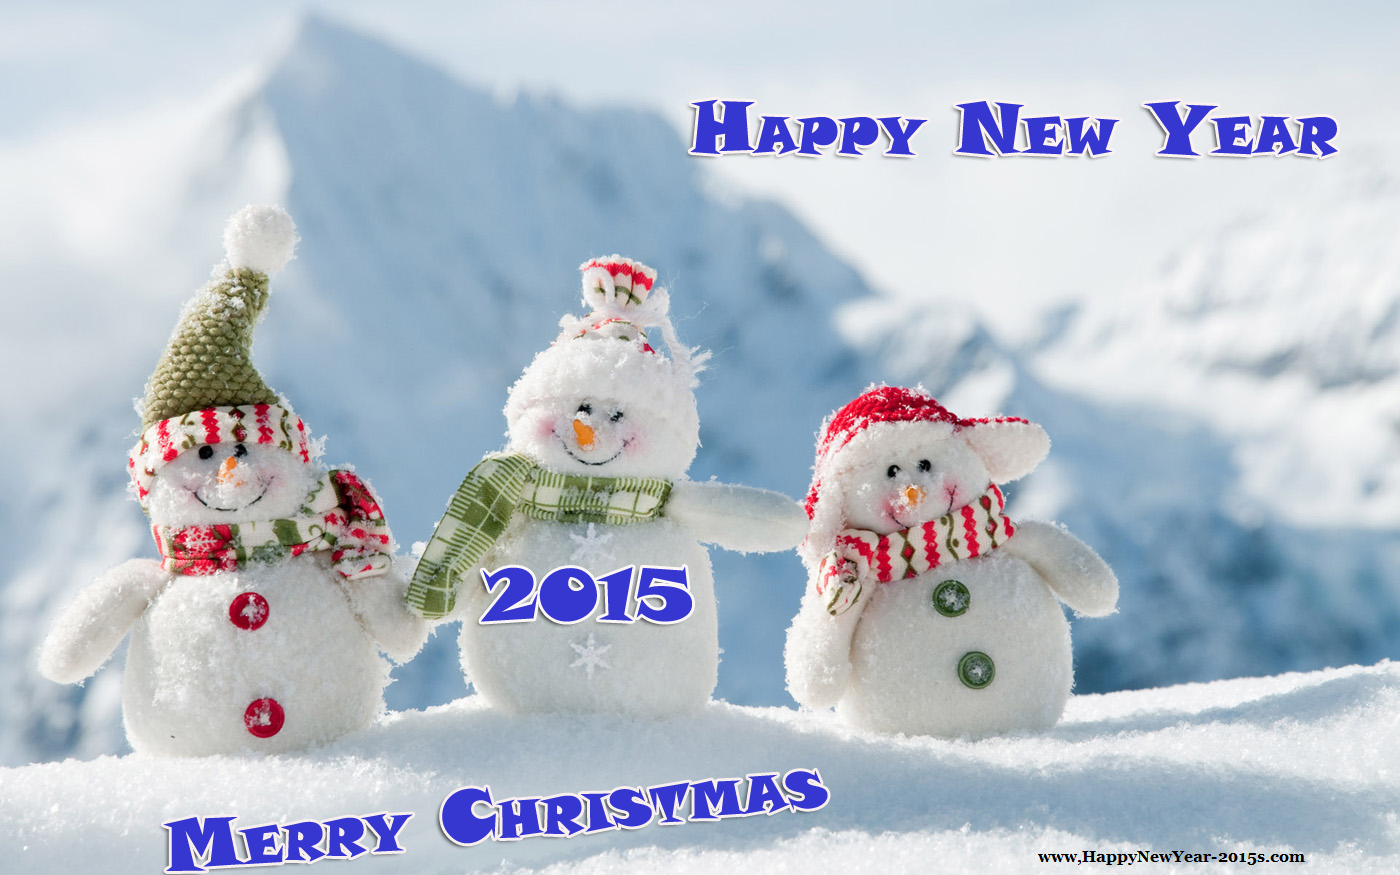 Merry Christmas And Happy New Year 2015 4k Hd Desktop: Merry Christmas Wallpaper 2015